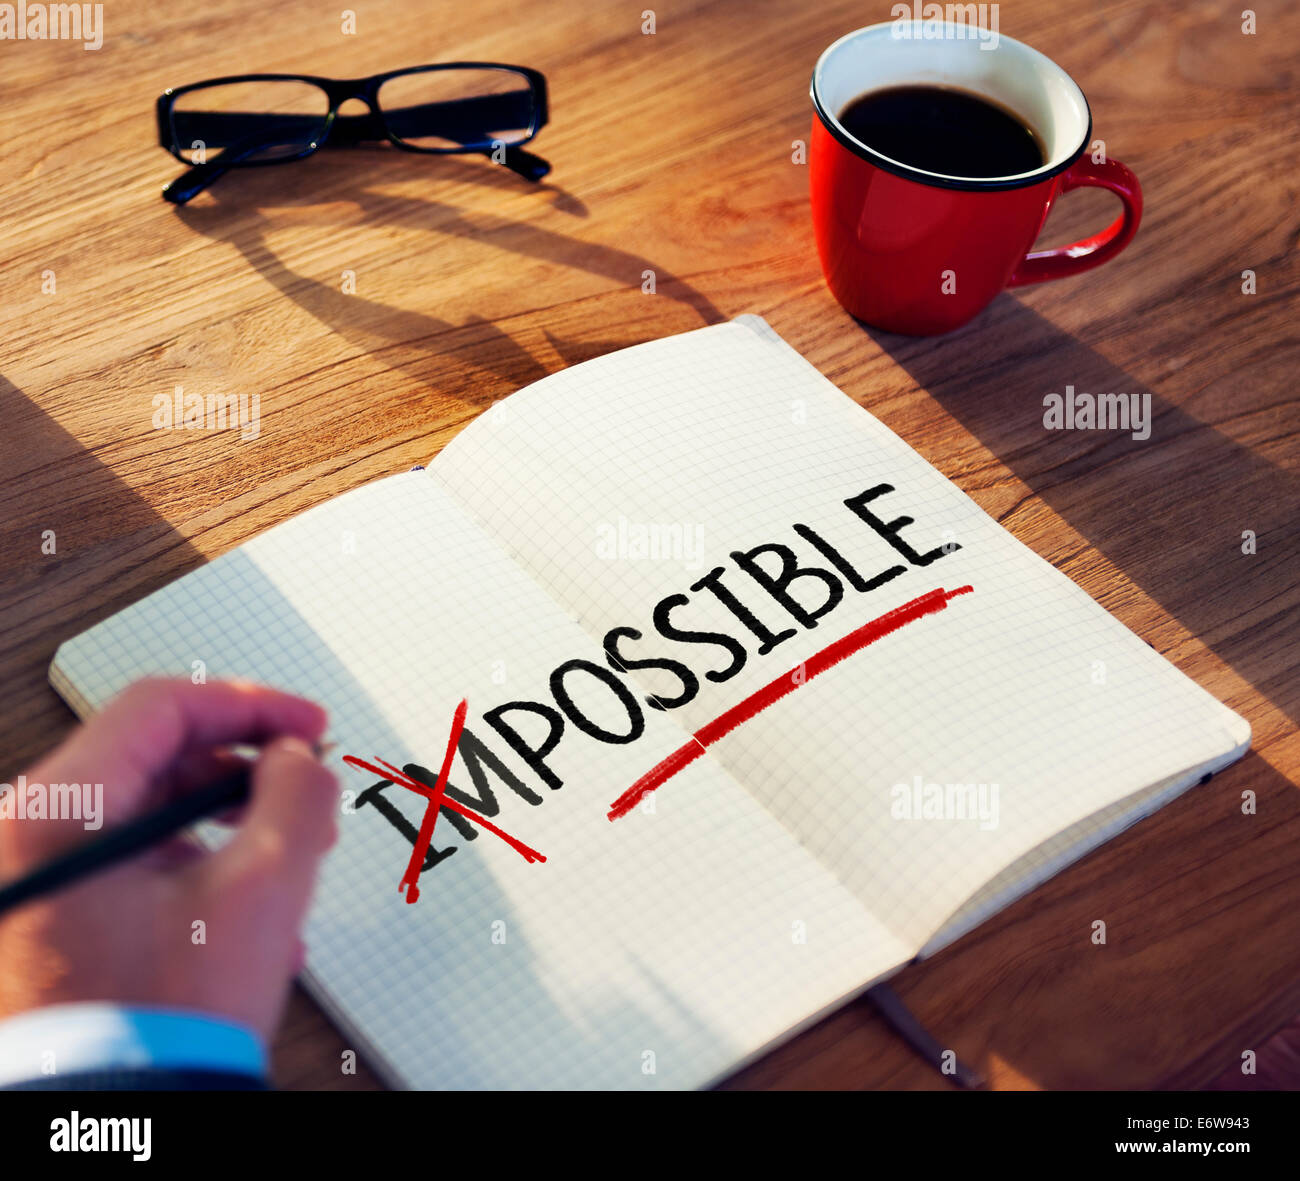 Man with Note Pad and Possibility Concepts - Stock Image